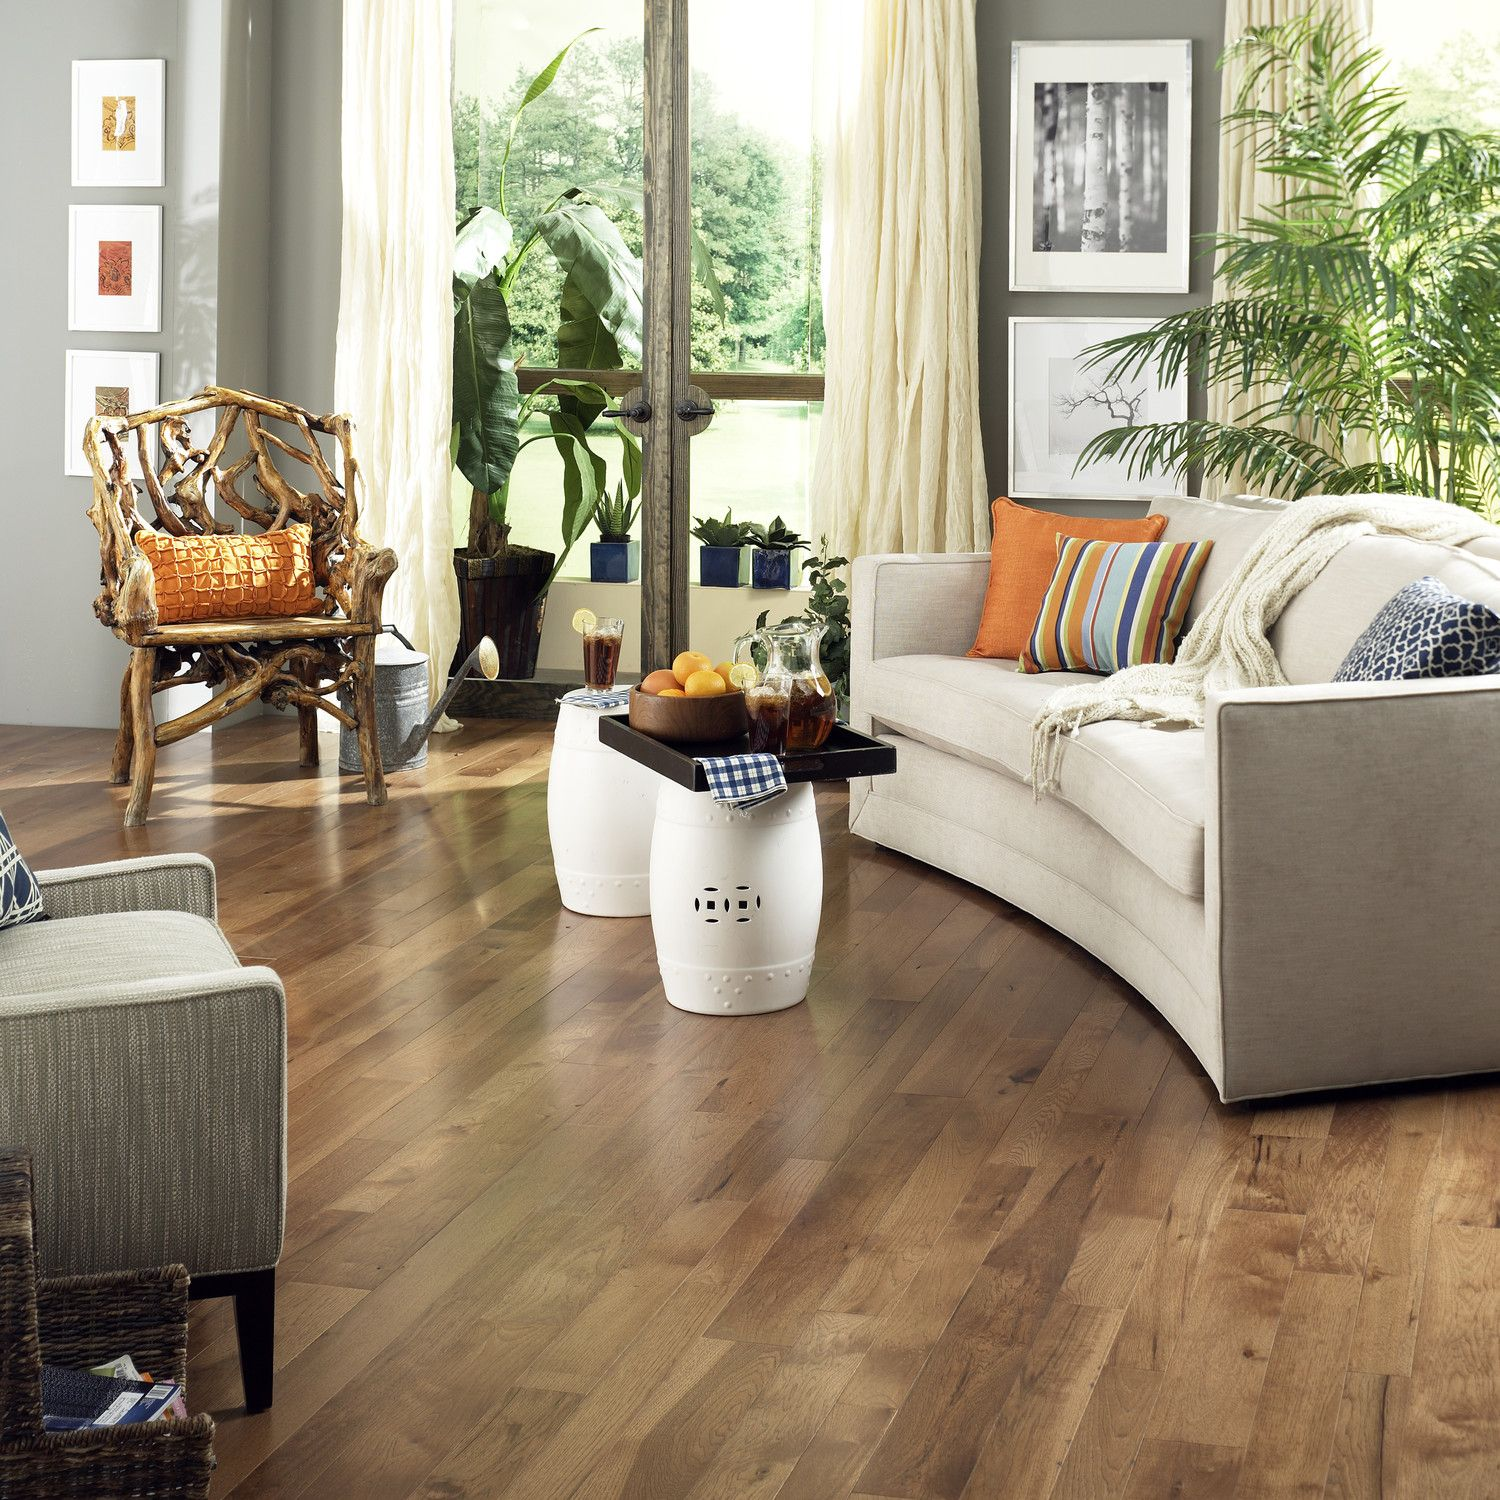 7 24 foot 5 solid hickory hardwood flooring in saddle somerset floors character 5 solid hickory hardwood flooring in saddle